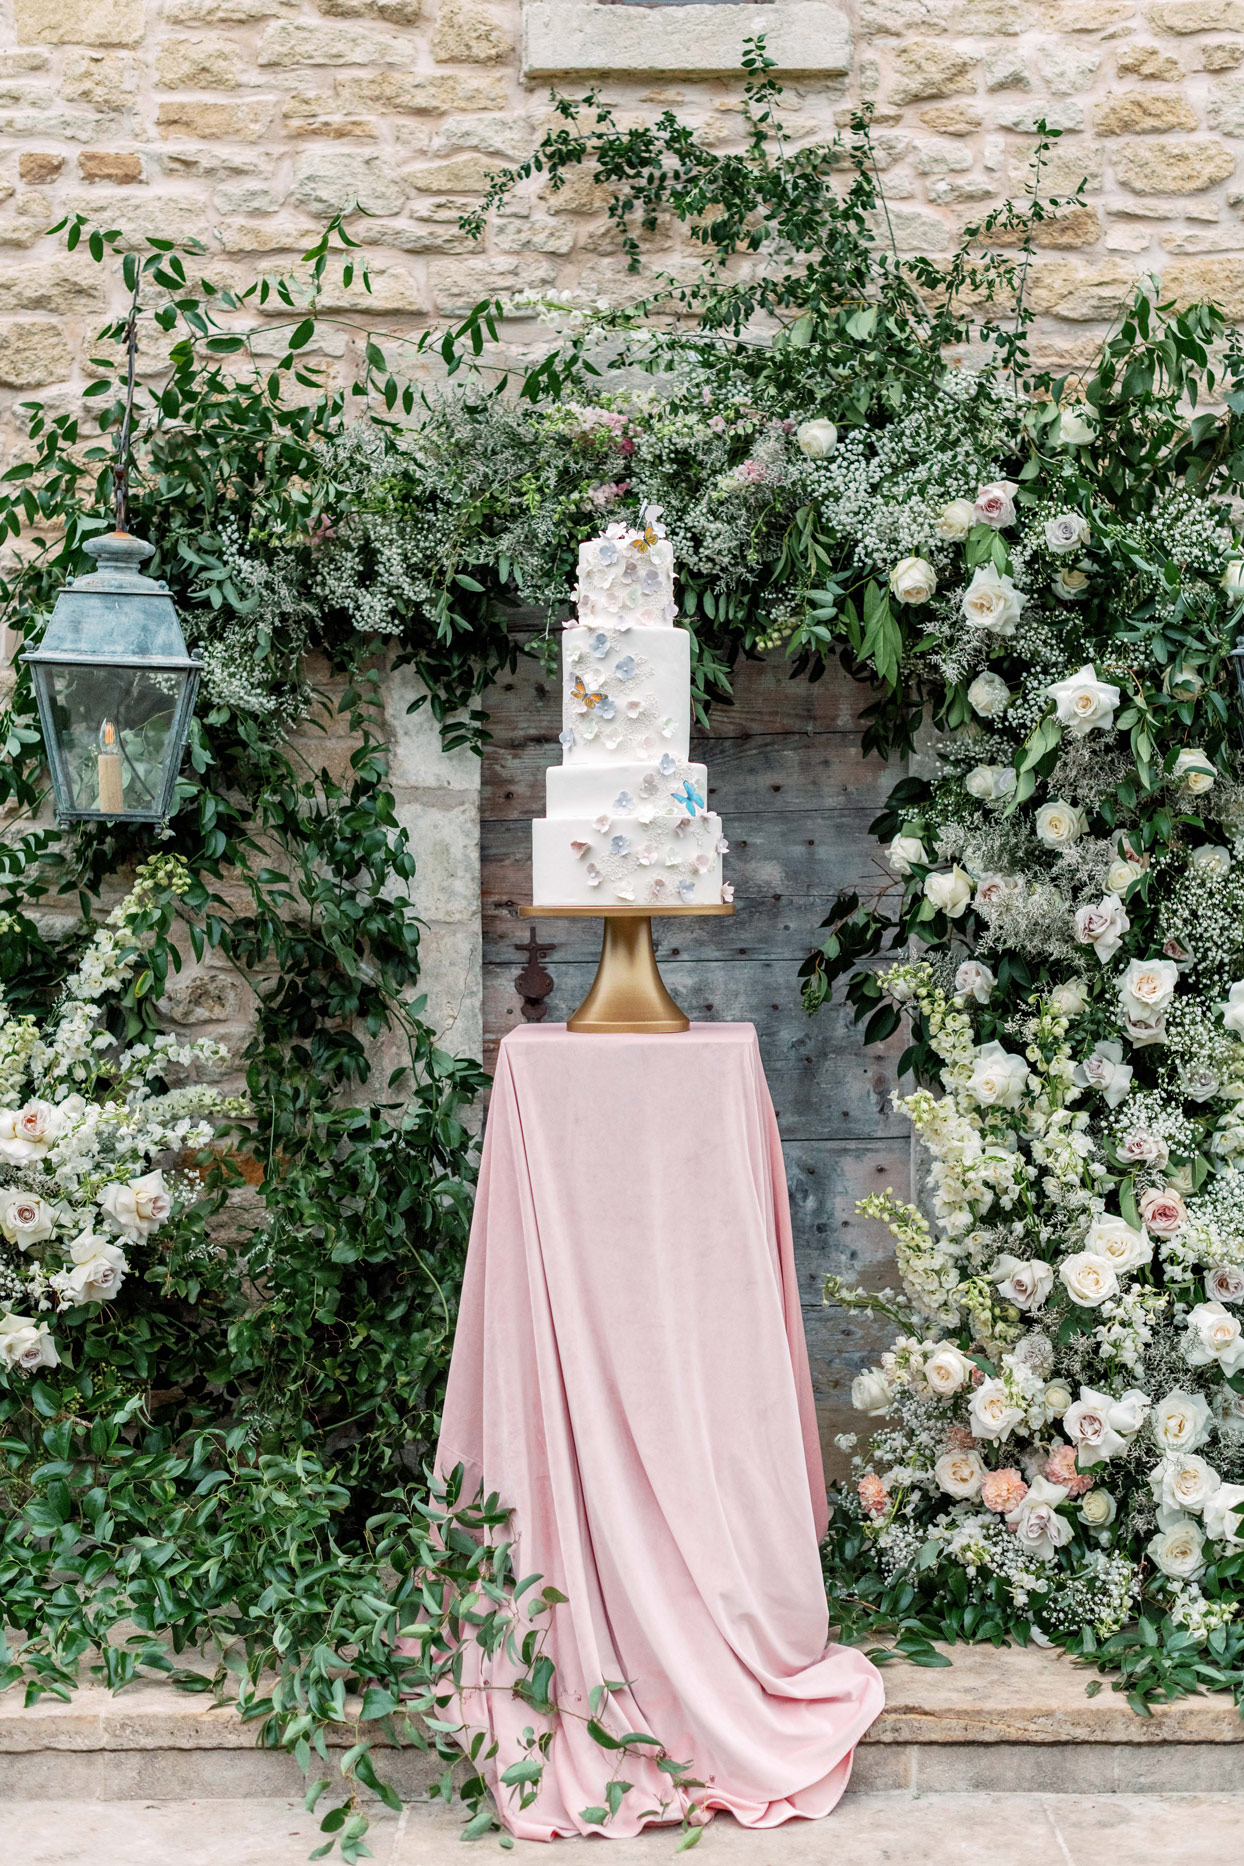 four-tier wedding cake on golden pedestal with blush tablecloth